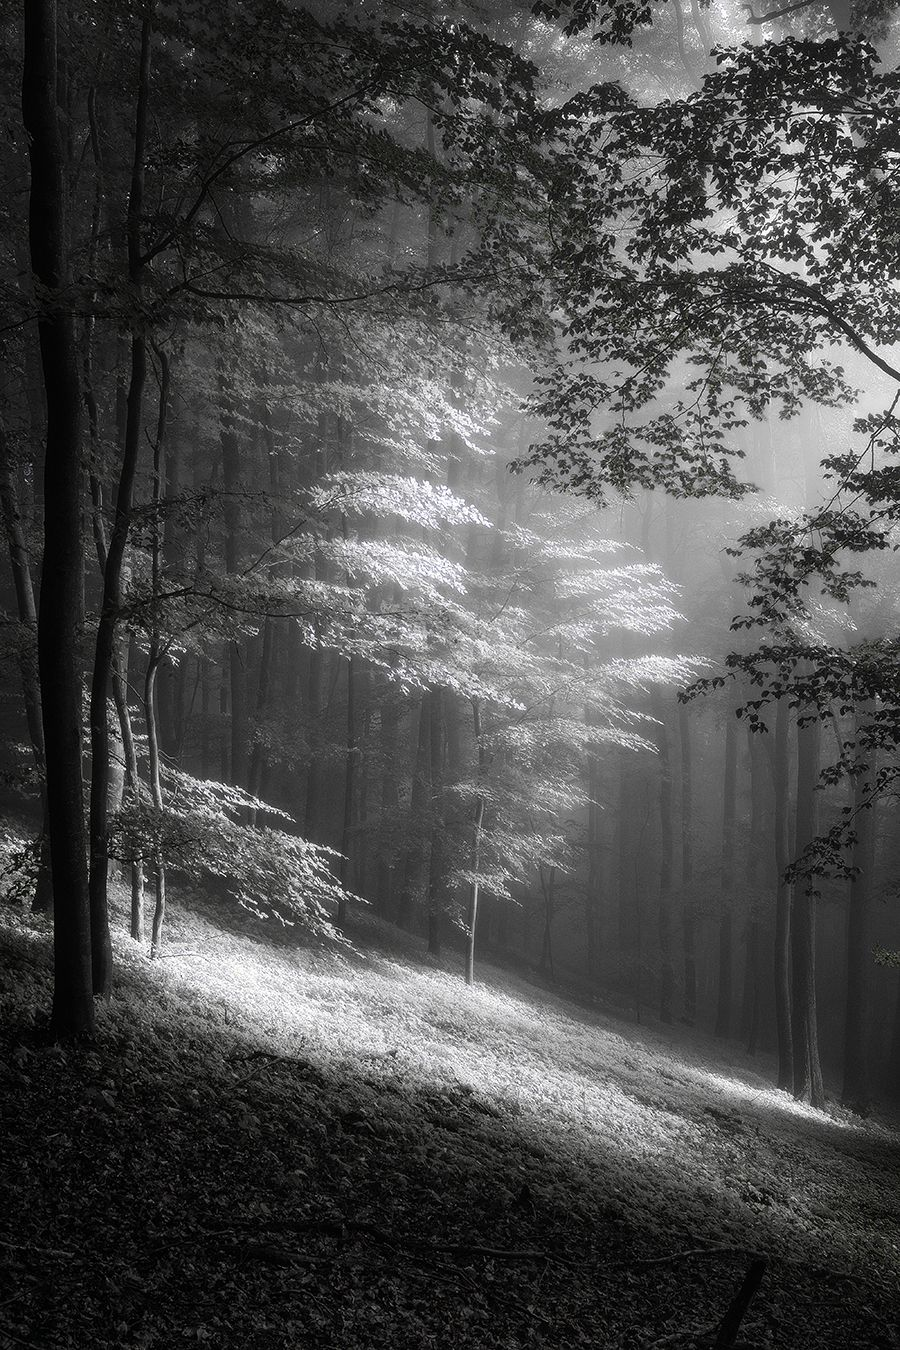 Fog In June By Fremdart In 2020 With Images Landscape Photography Black And White Landscape Nature Photography Trees